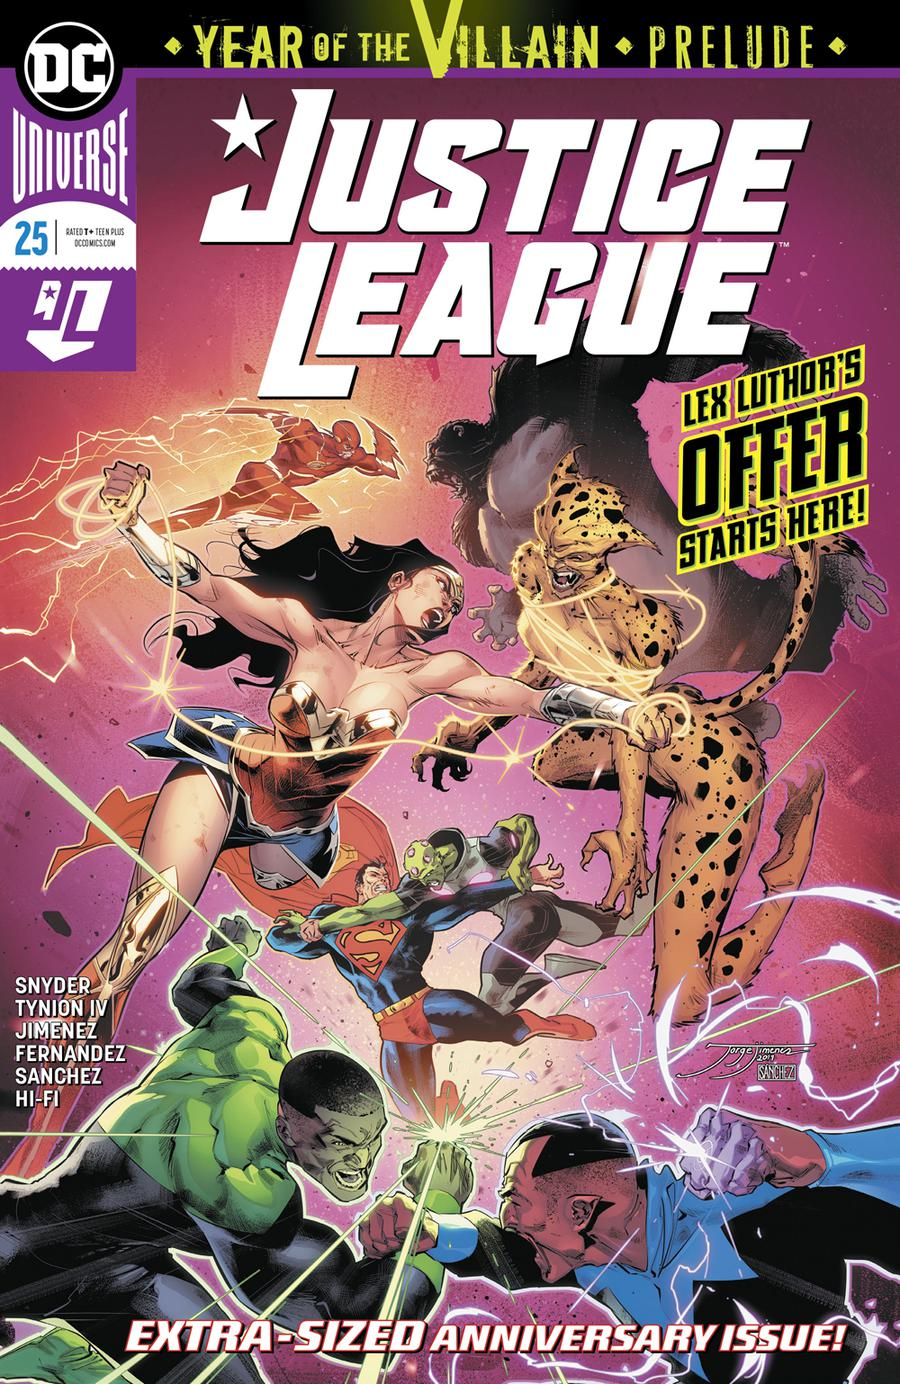 Justice League Vol 4 #25 Cover A Regular Jorge Jimenez Cover (DCs Year Of The Villian Tie-In)